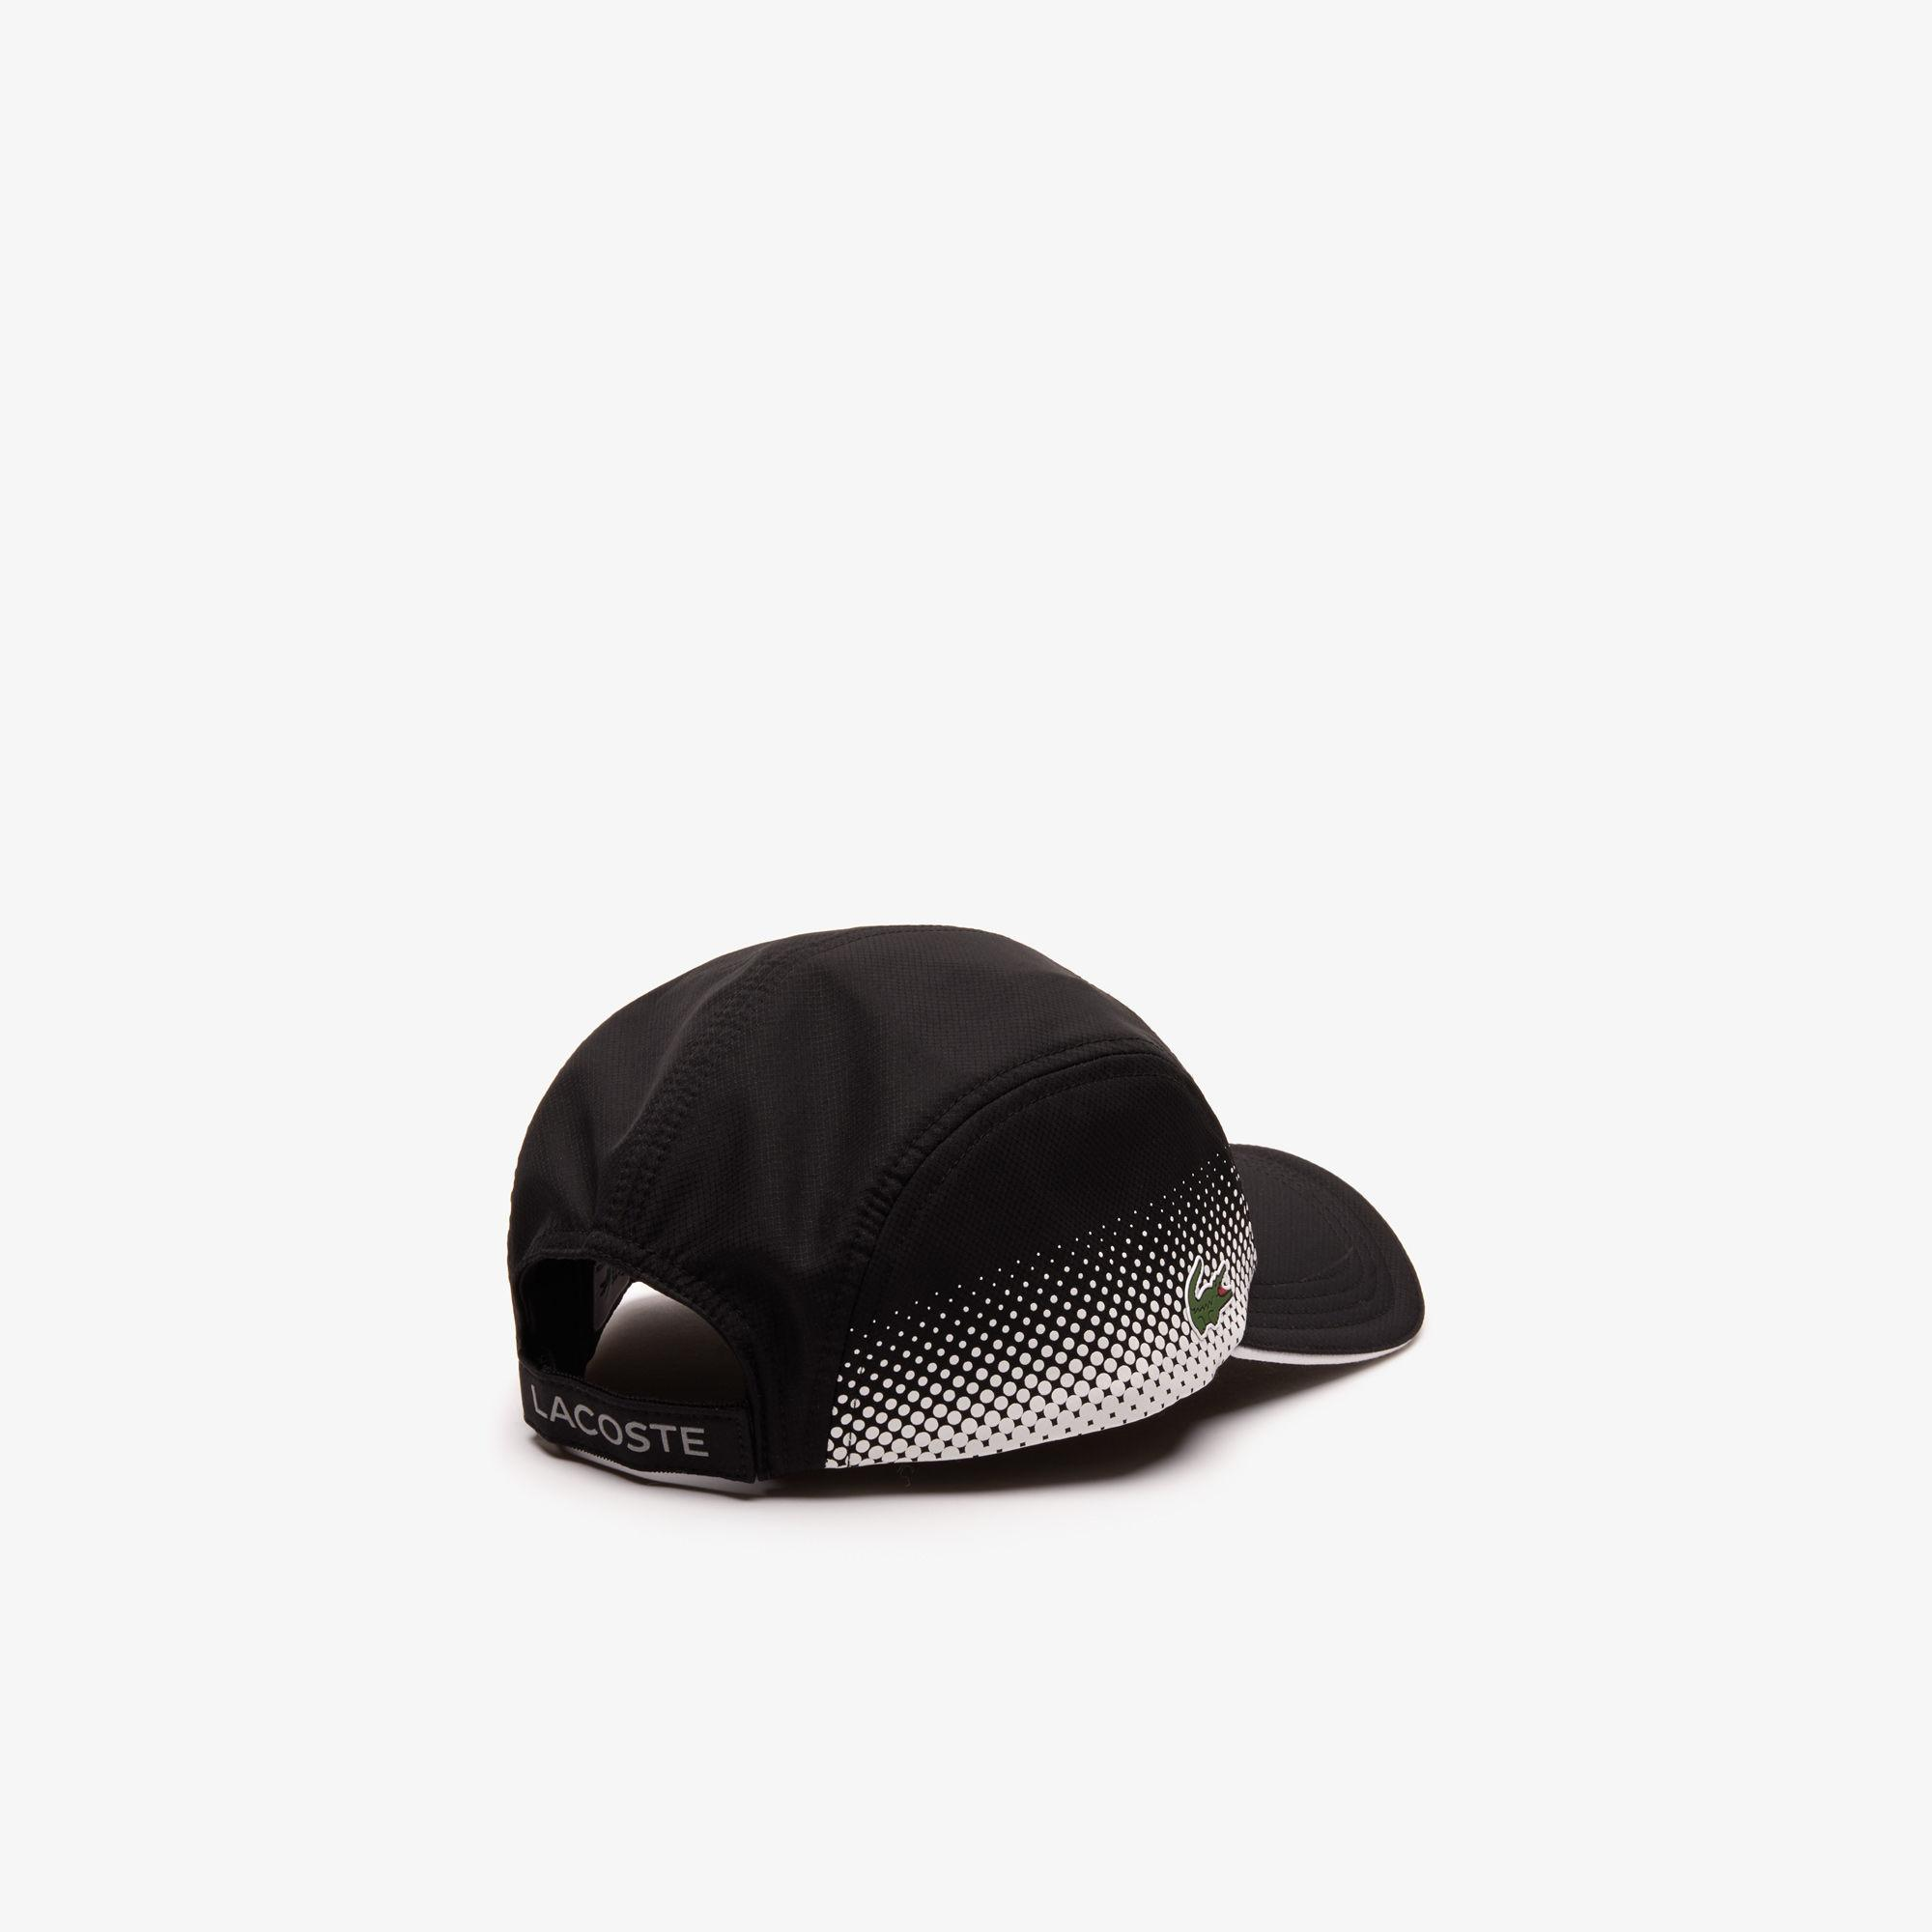 41be7ca01b2 Lyst - Lacoste Sport Breathable Tennis Cap in Black for Men